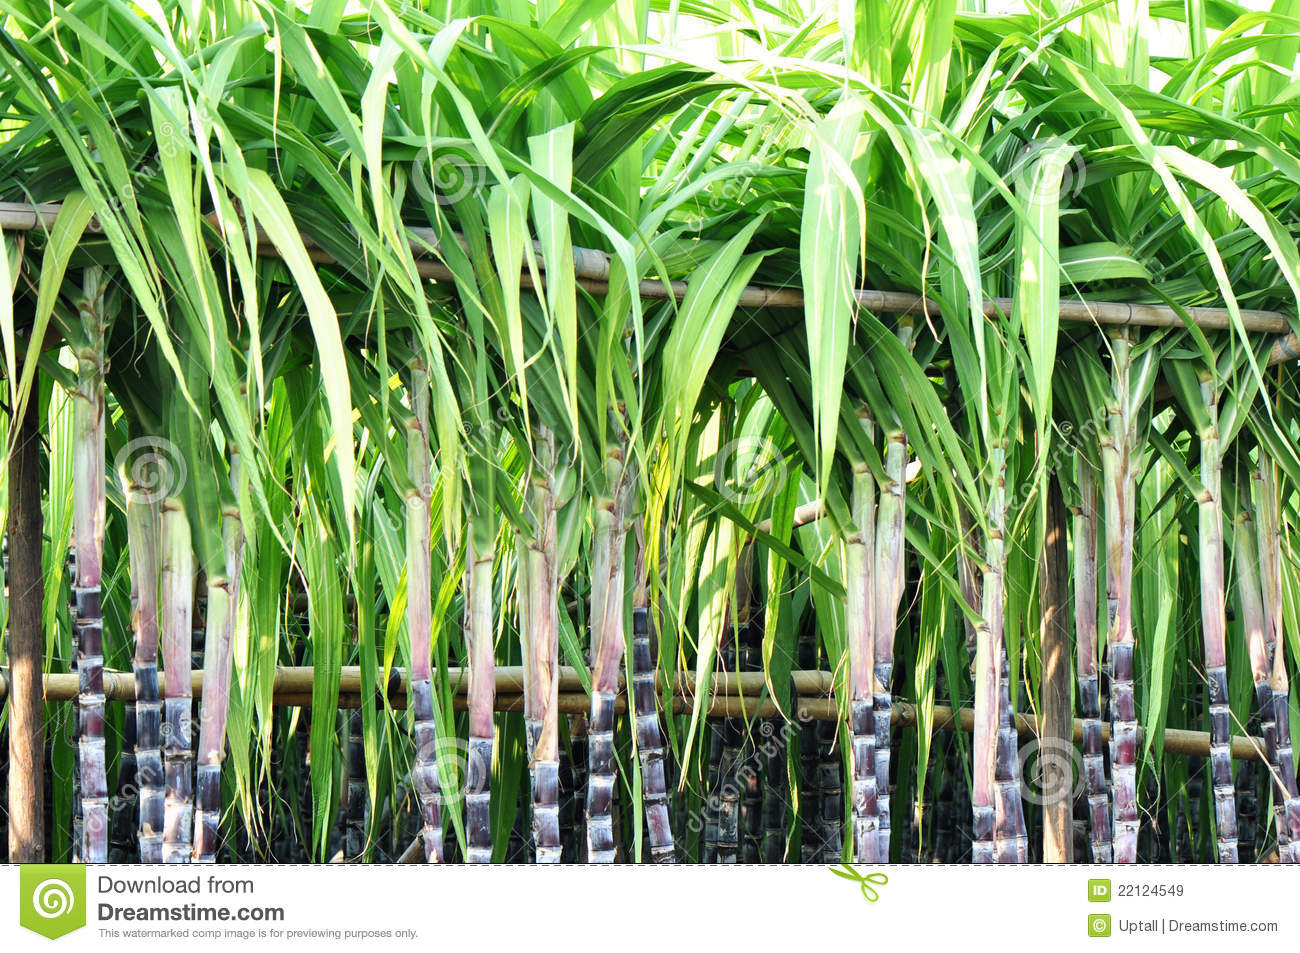 Sugarcane Stalks Steady With Bamboo Pole Royalty Free